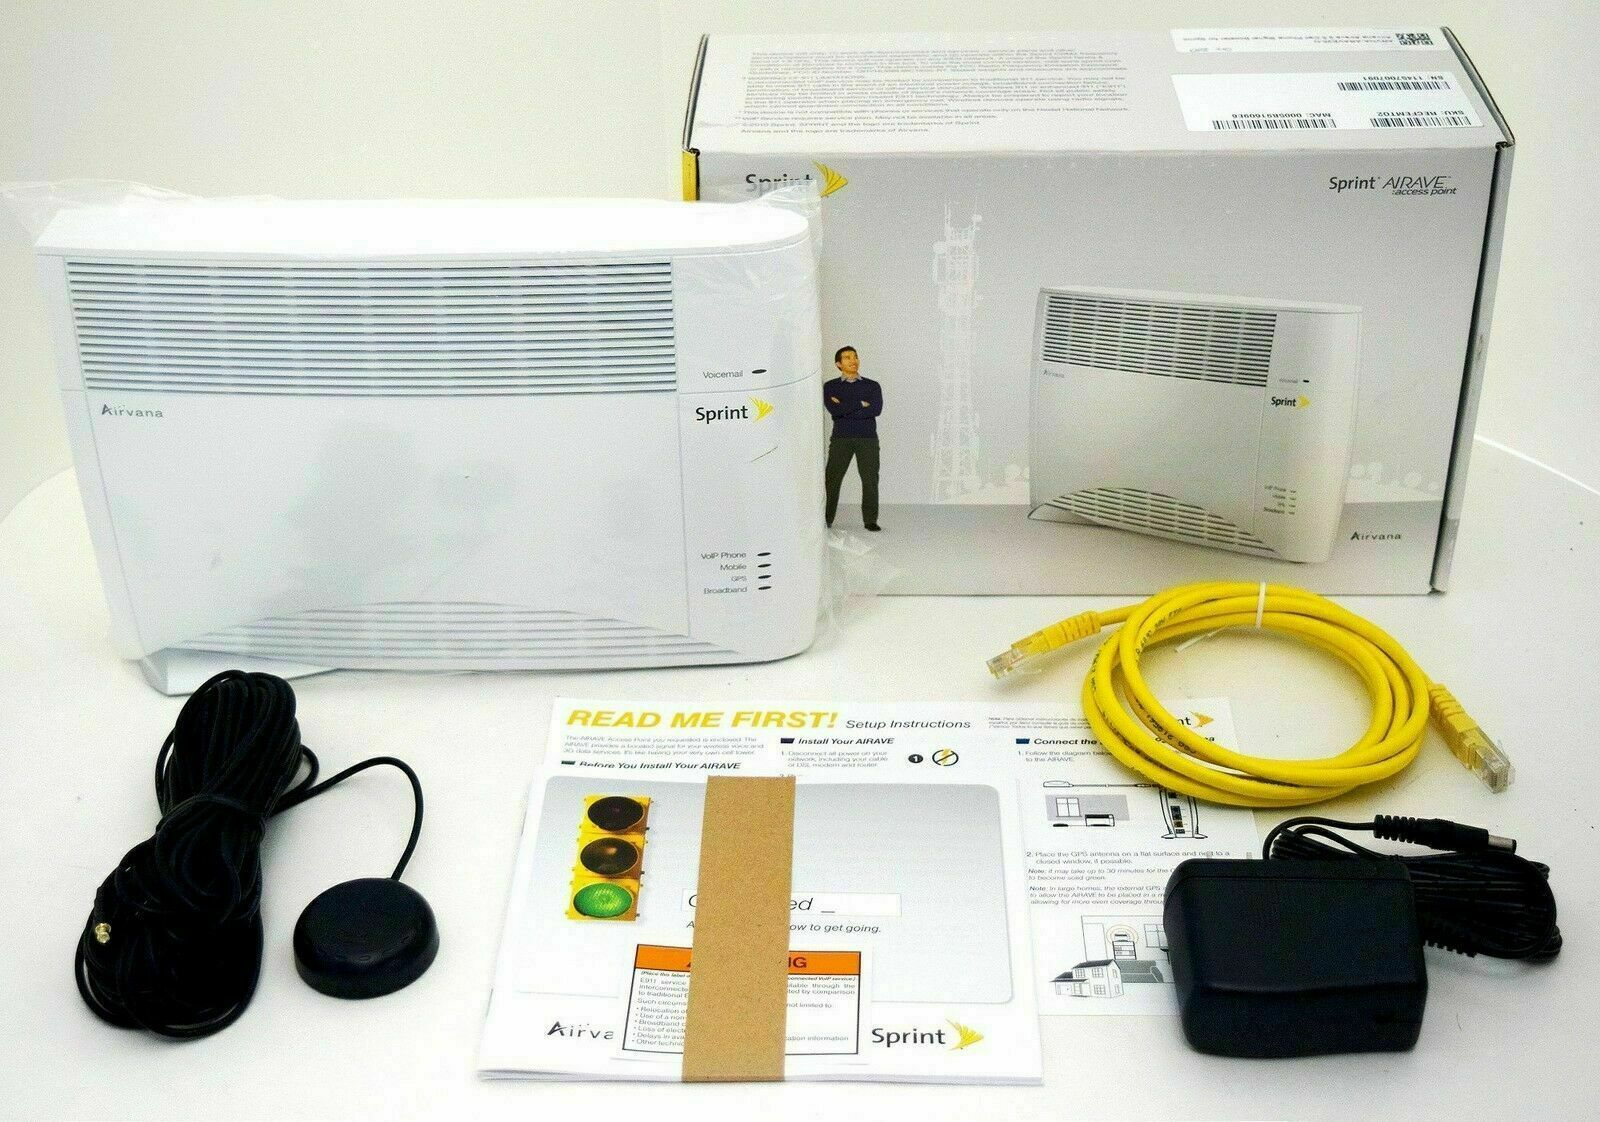 Sprint Airave Airvana Access Point Cell Phone Signal Booster